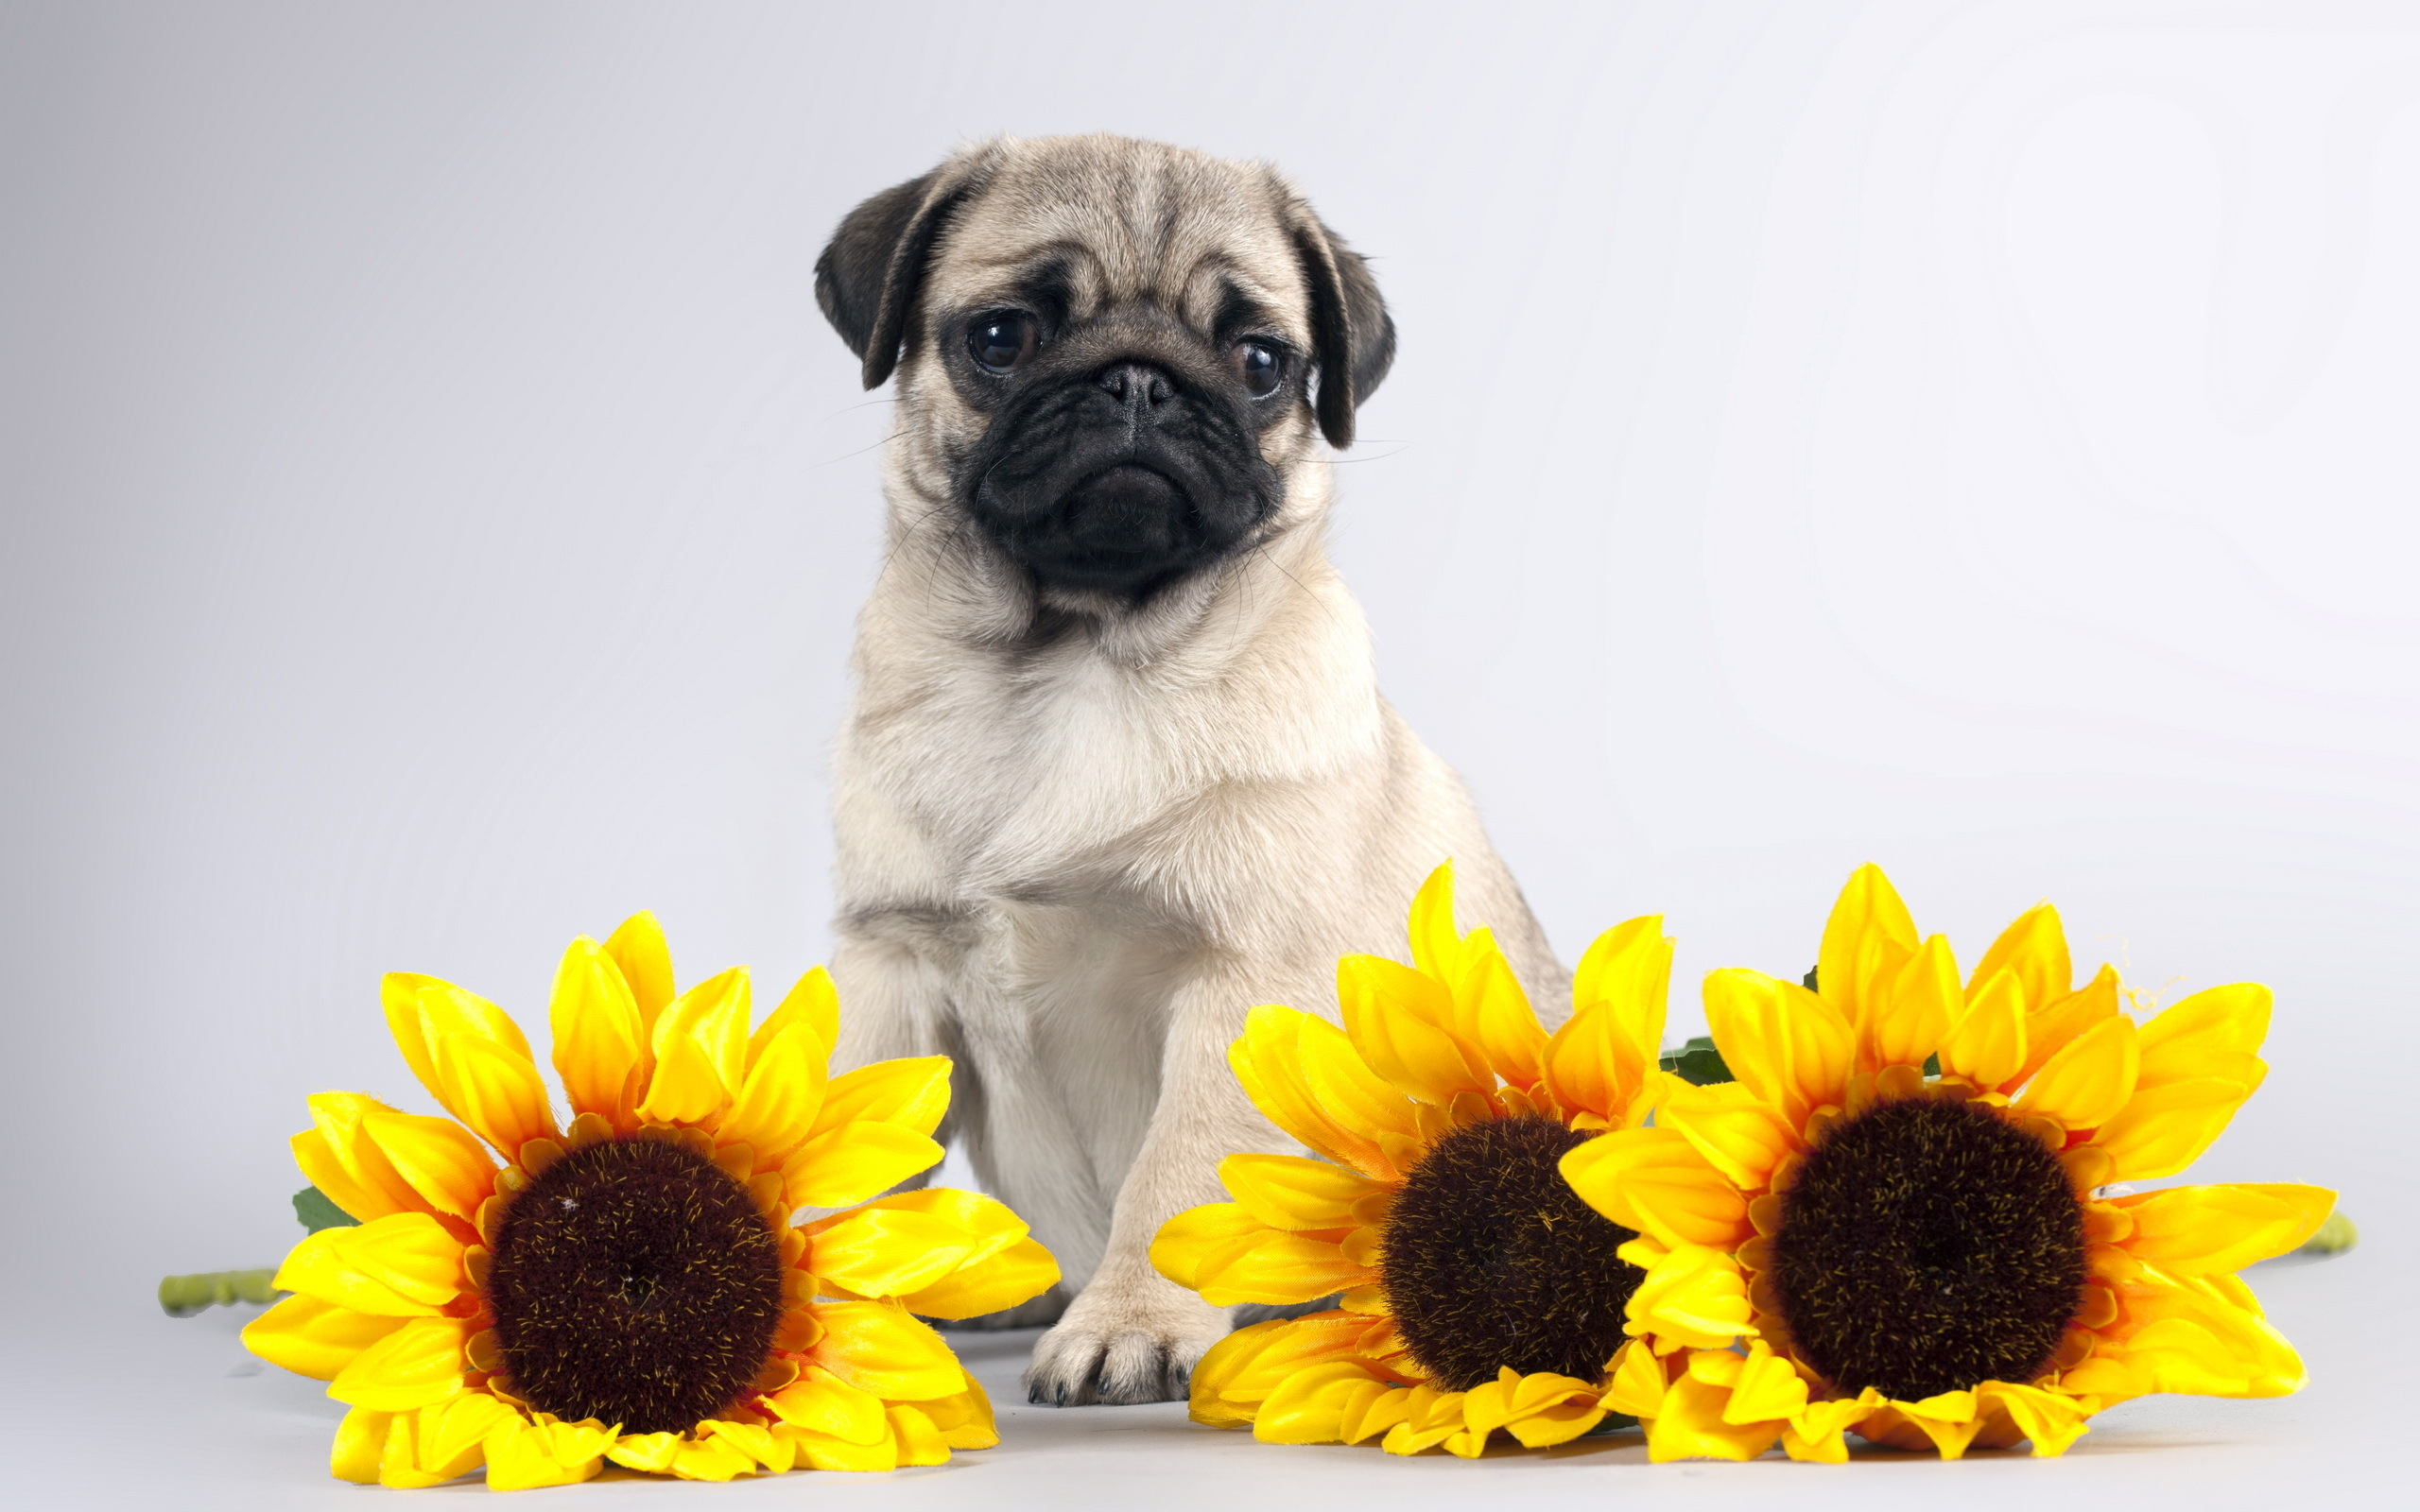 Pug Iphone Wallpaper Pug Full Hd Wallpaper And Background Image 2560x1600